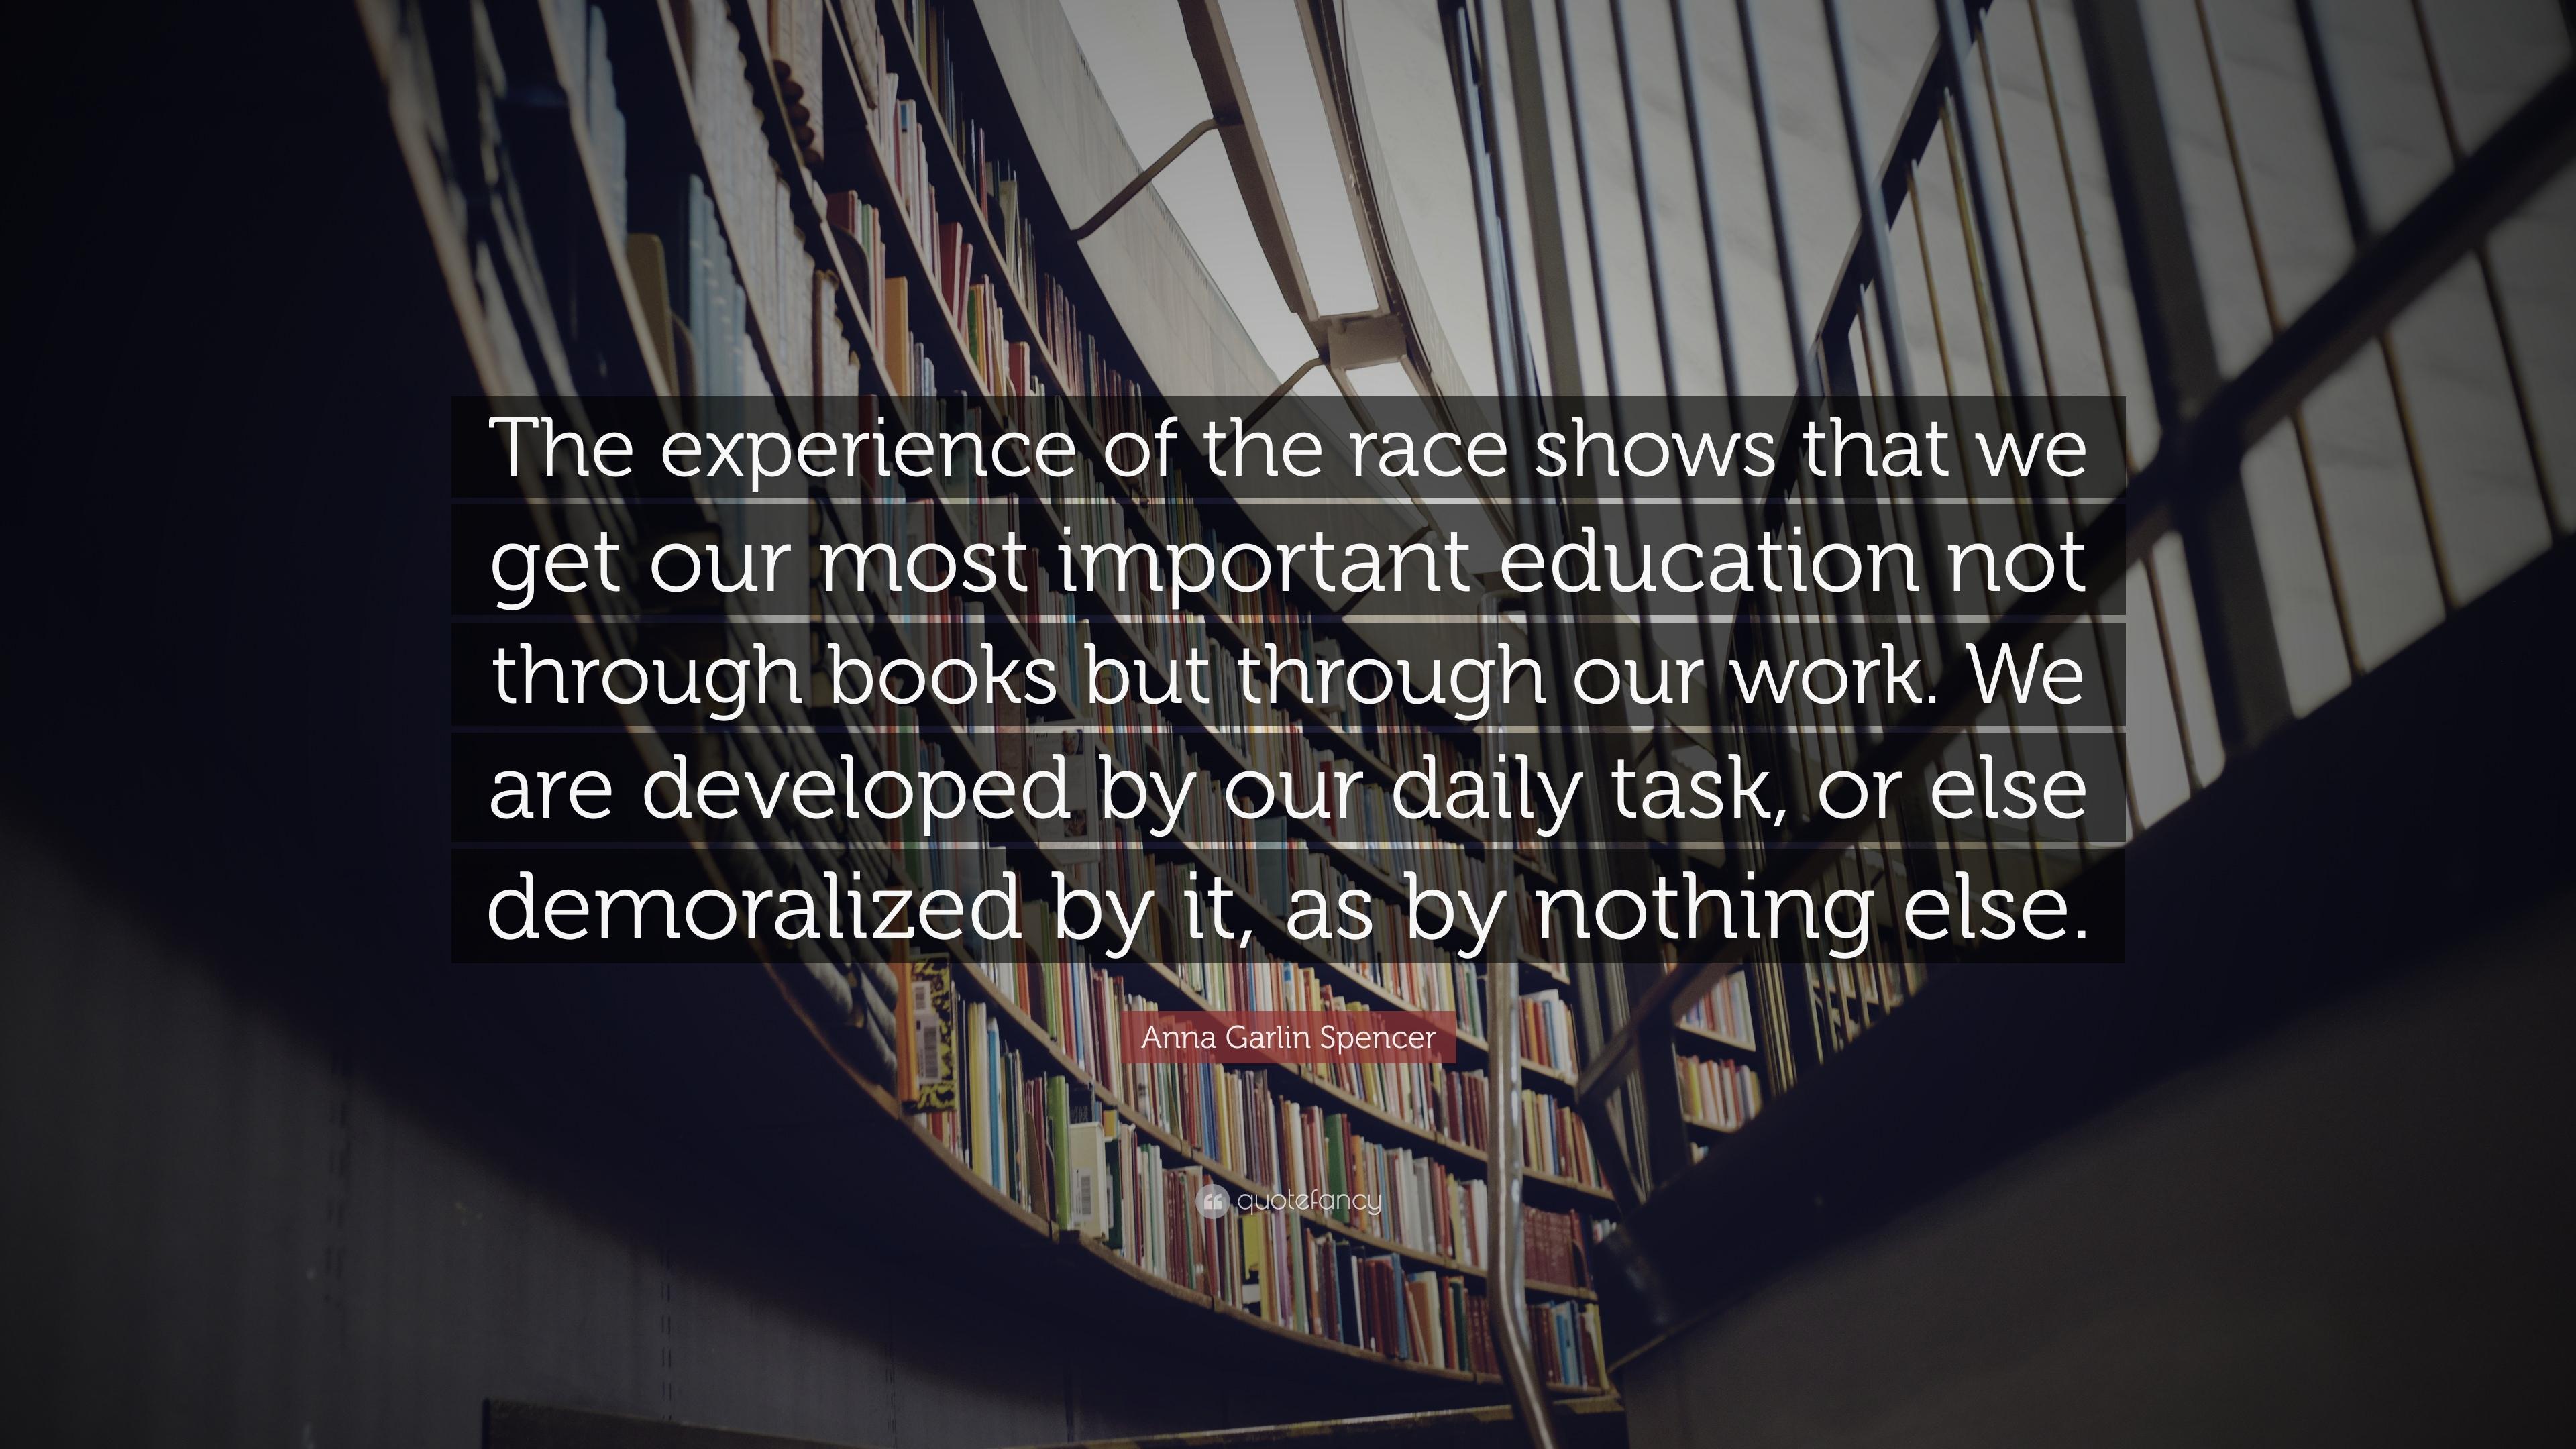 """anna garlin spencer quote """"the experience of the race shows that"""